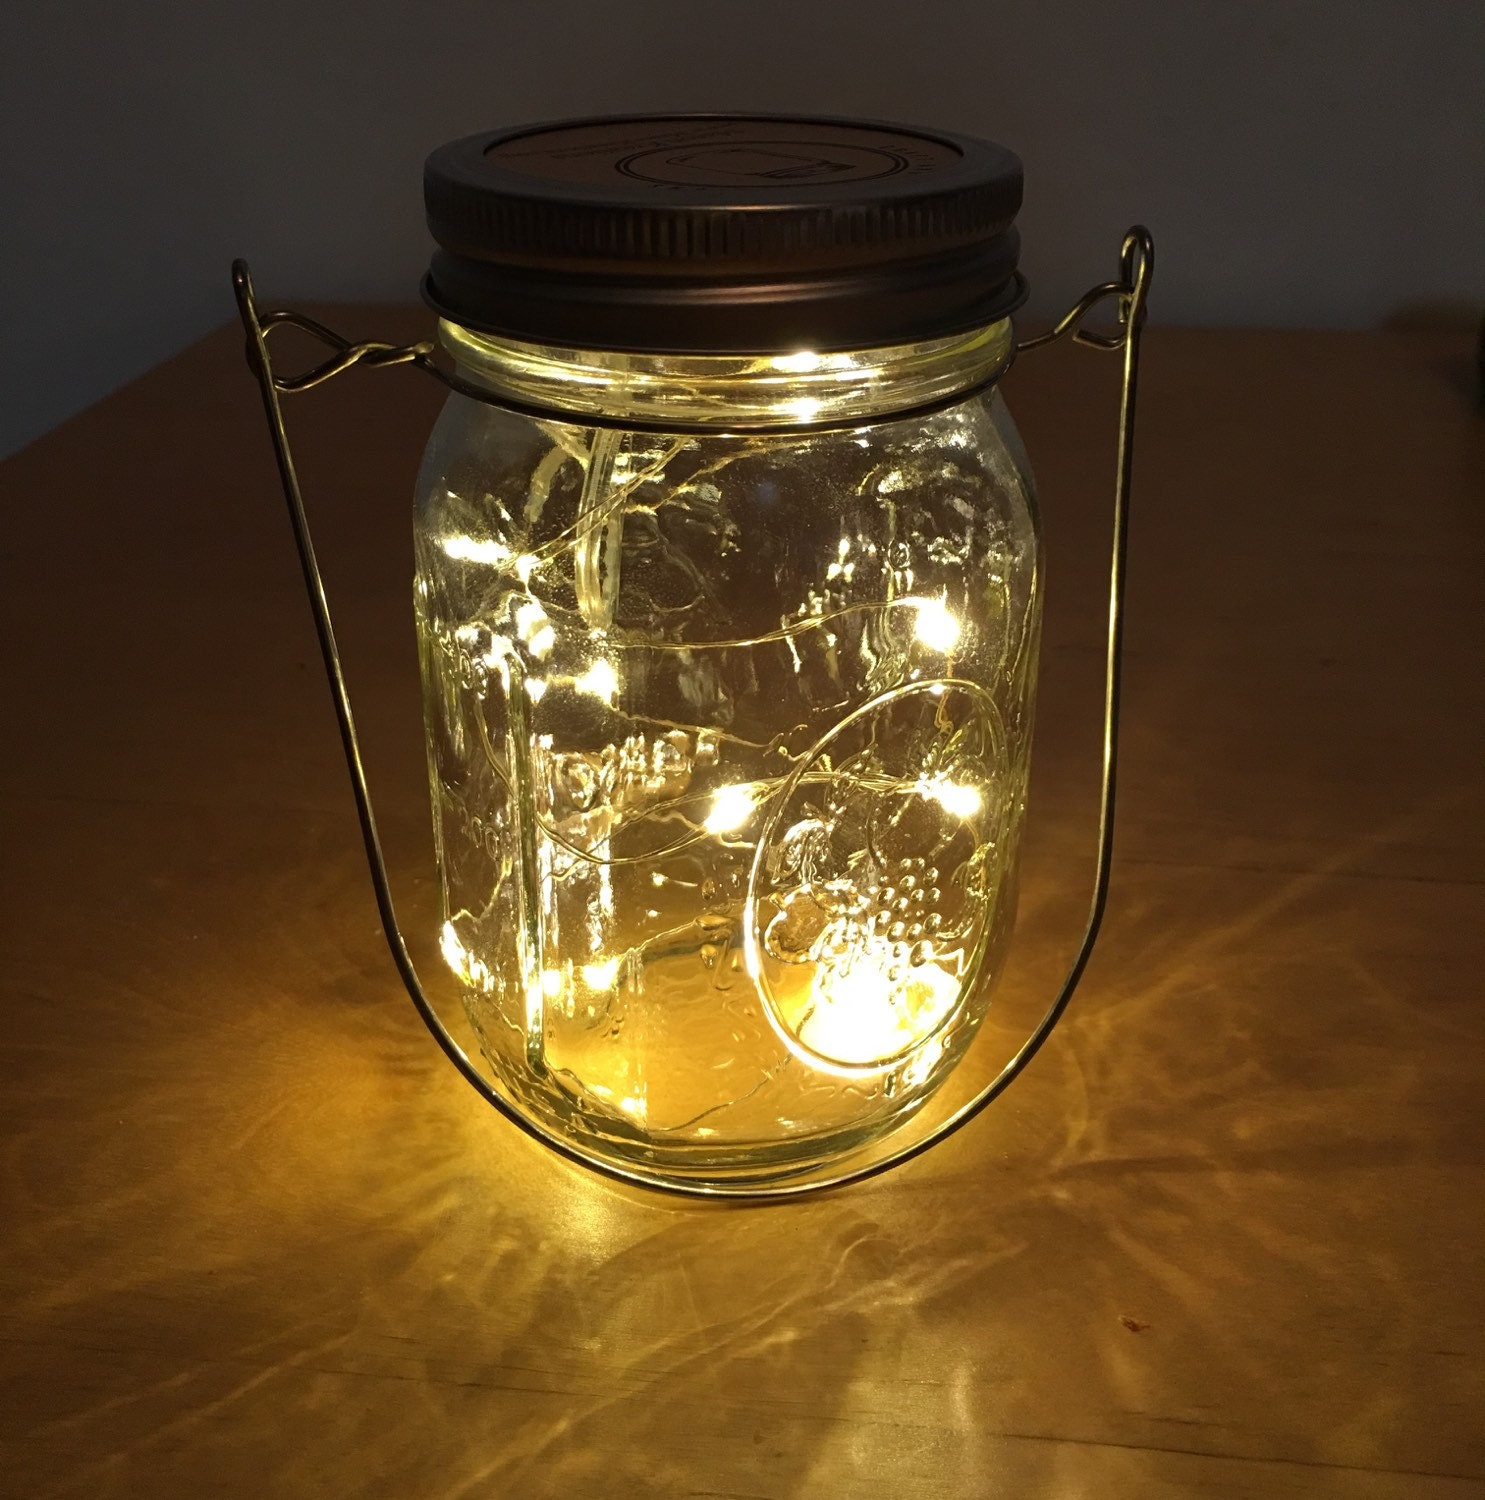 Wire Hanger Firefly Lights With Mason Jar By